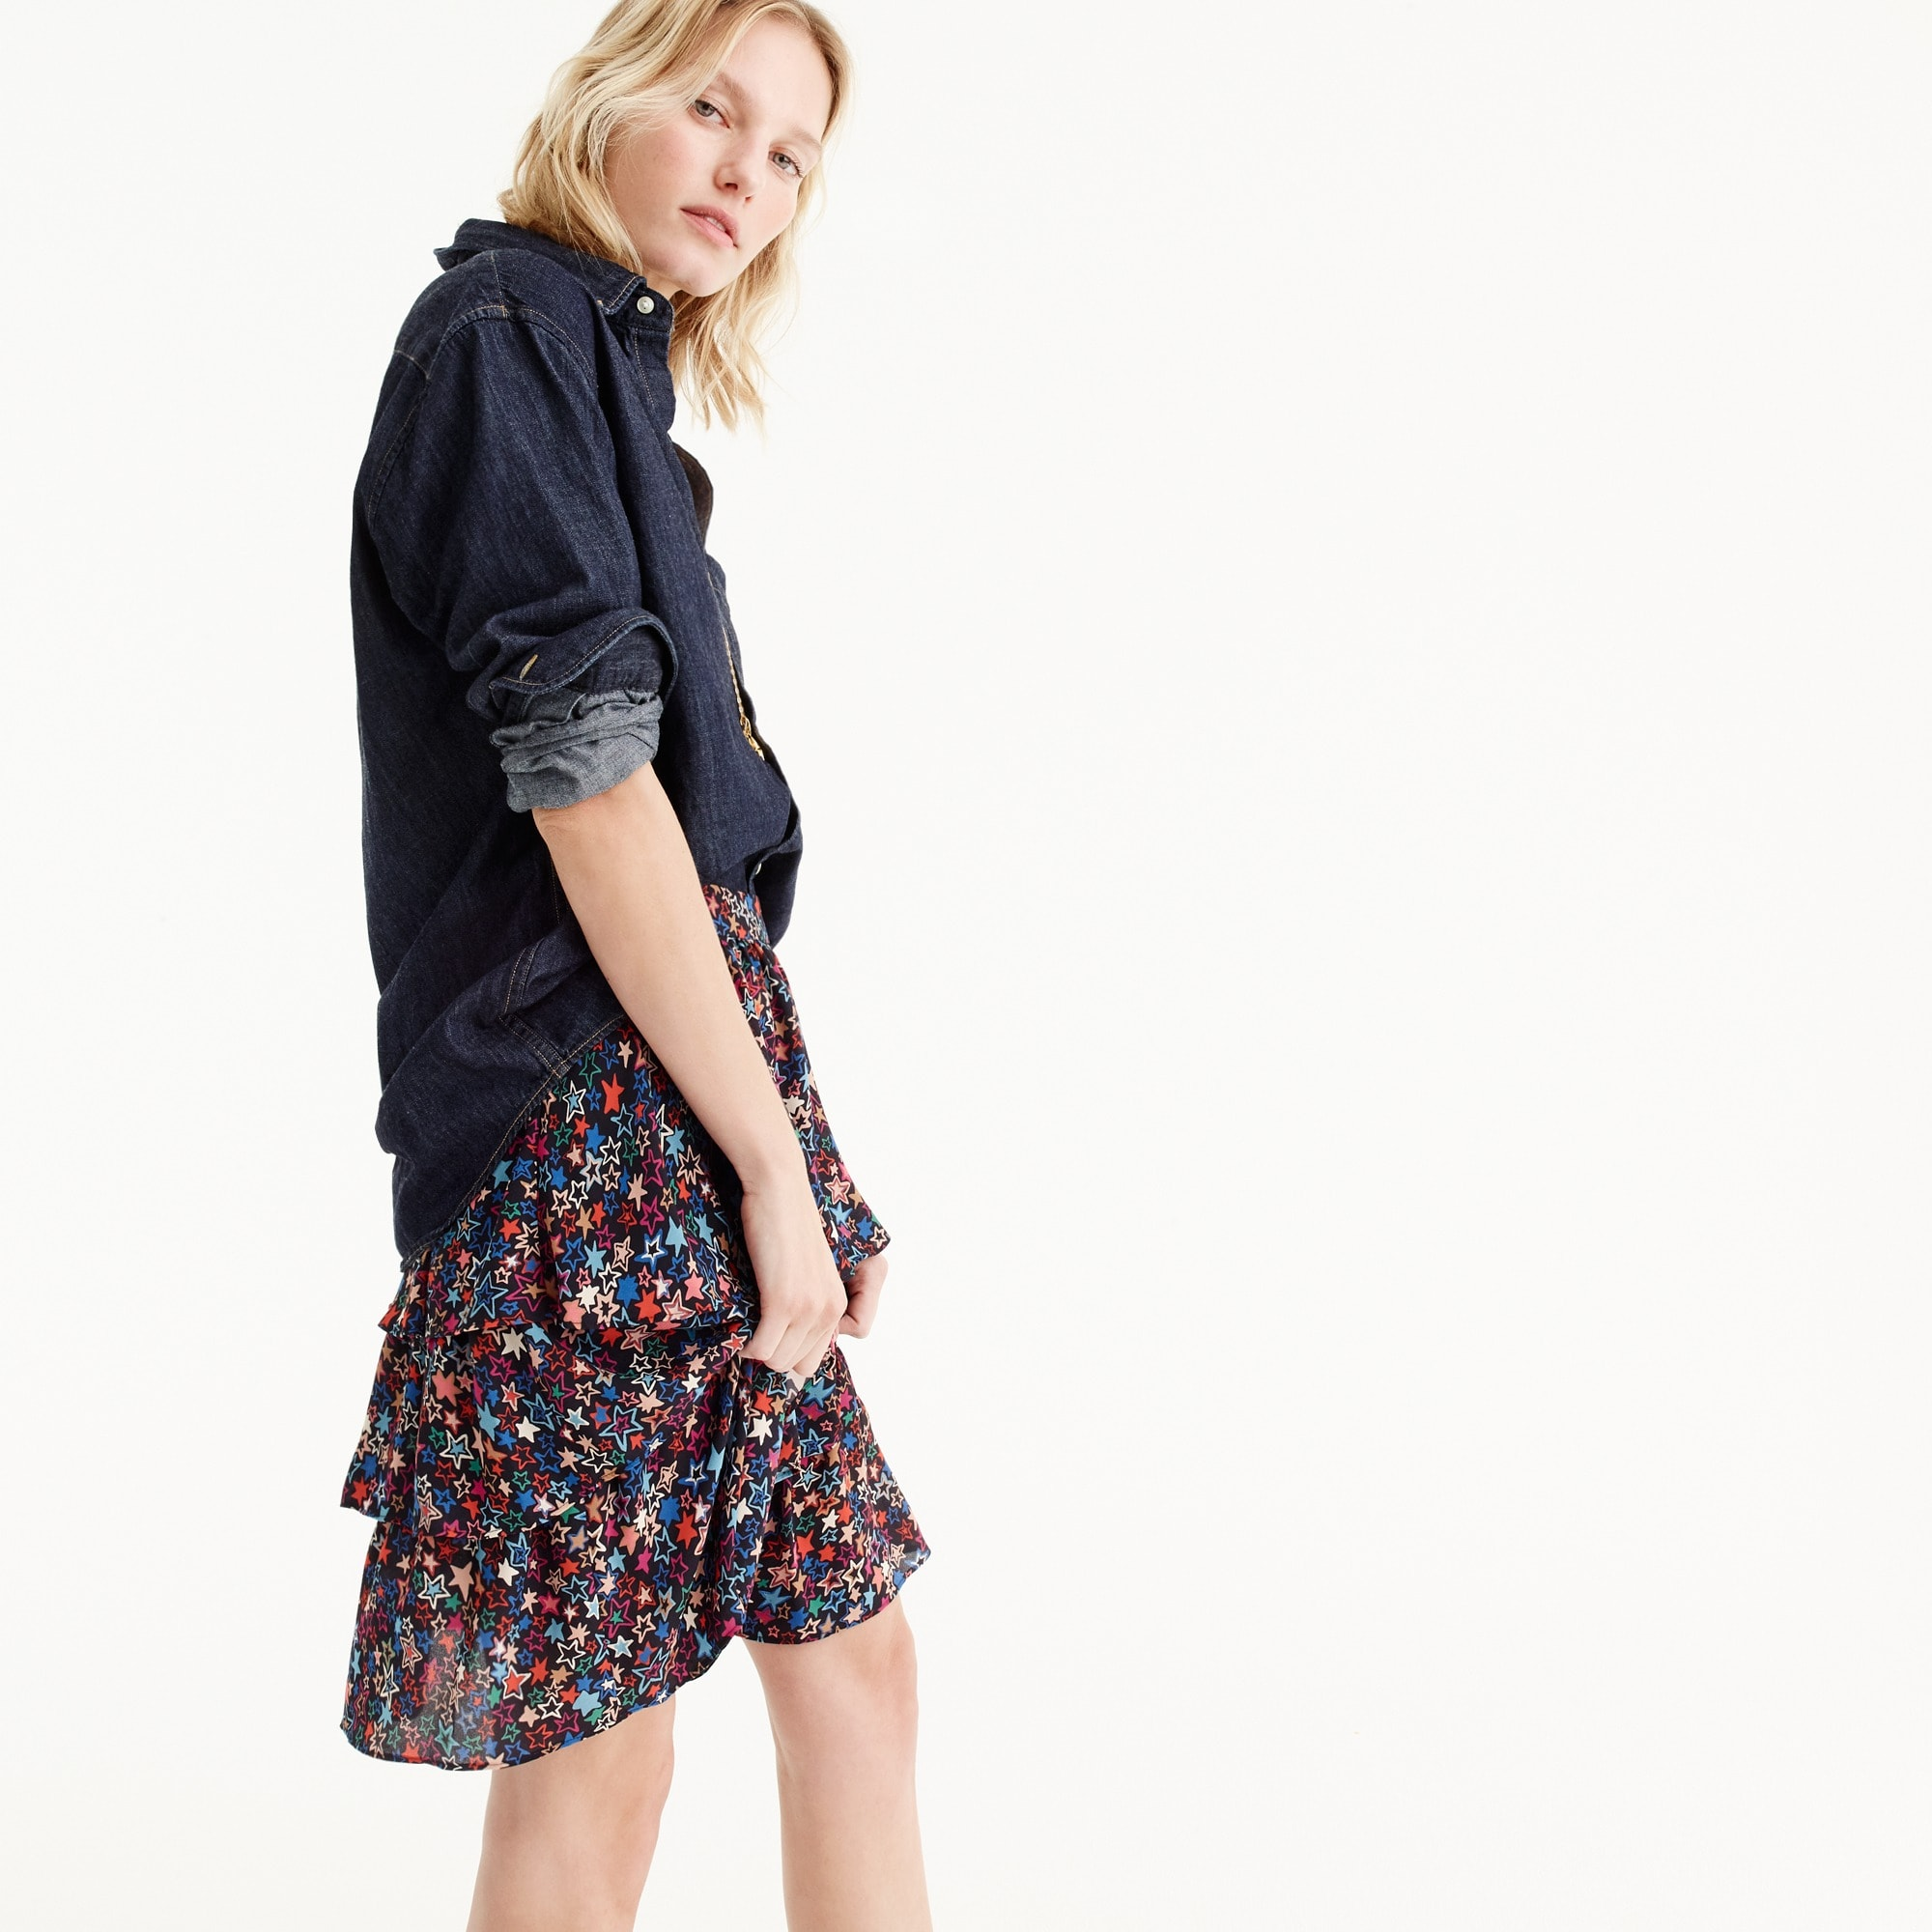 Tiered skirt in kaleidoscope star print